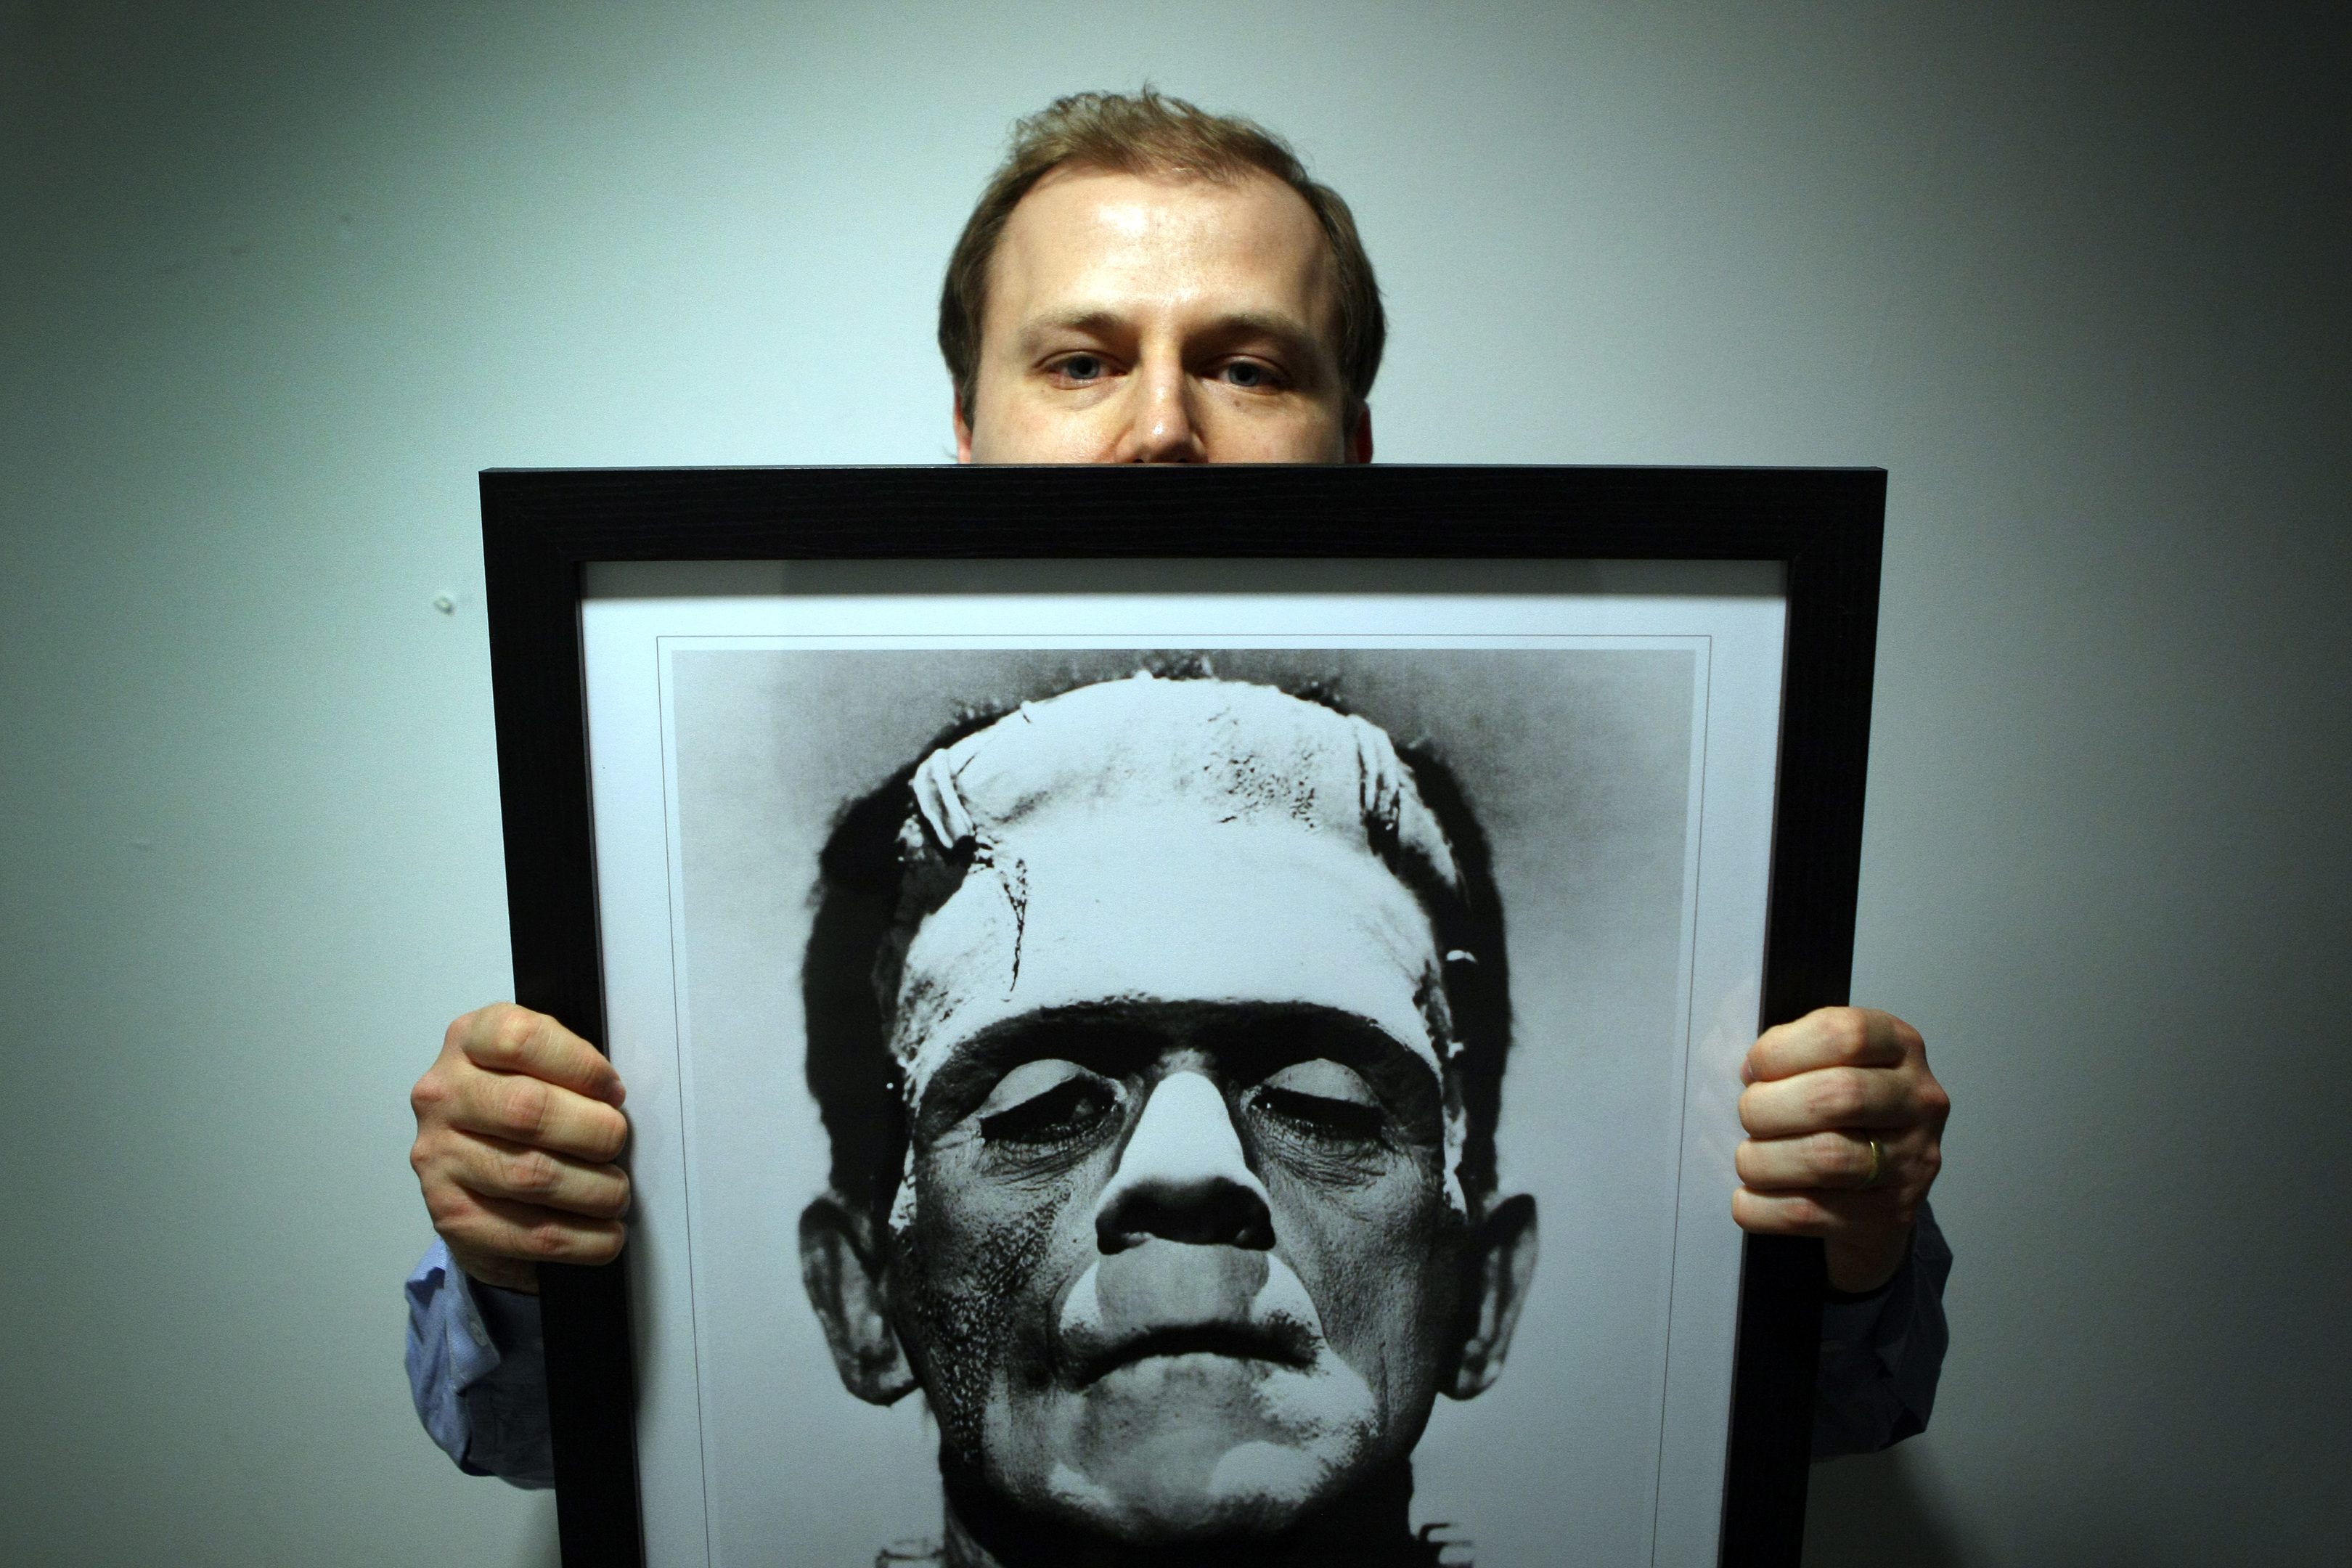 Dr Daniel Cook and monster.